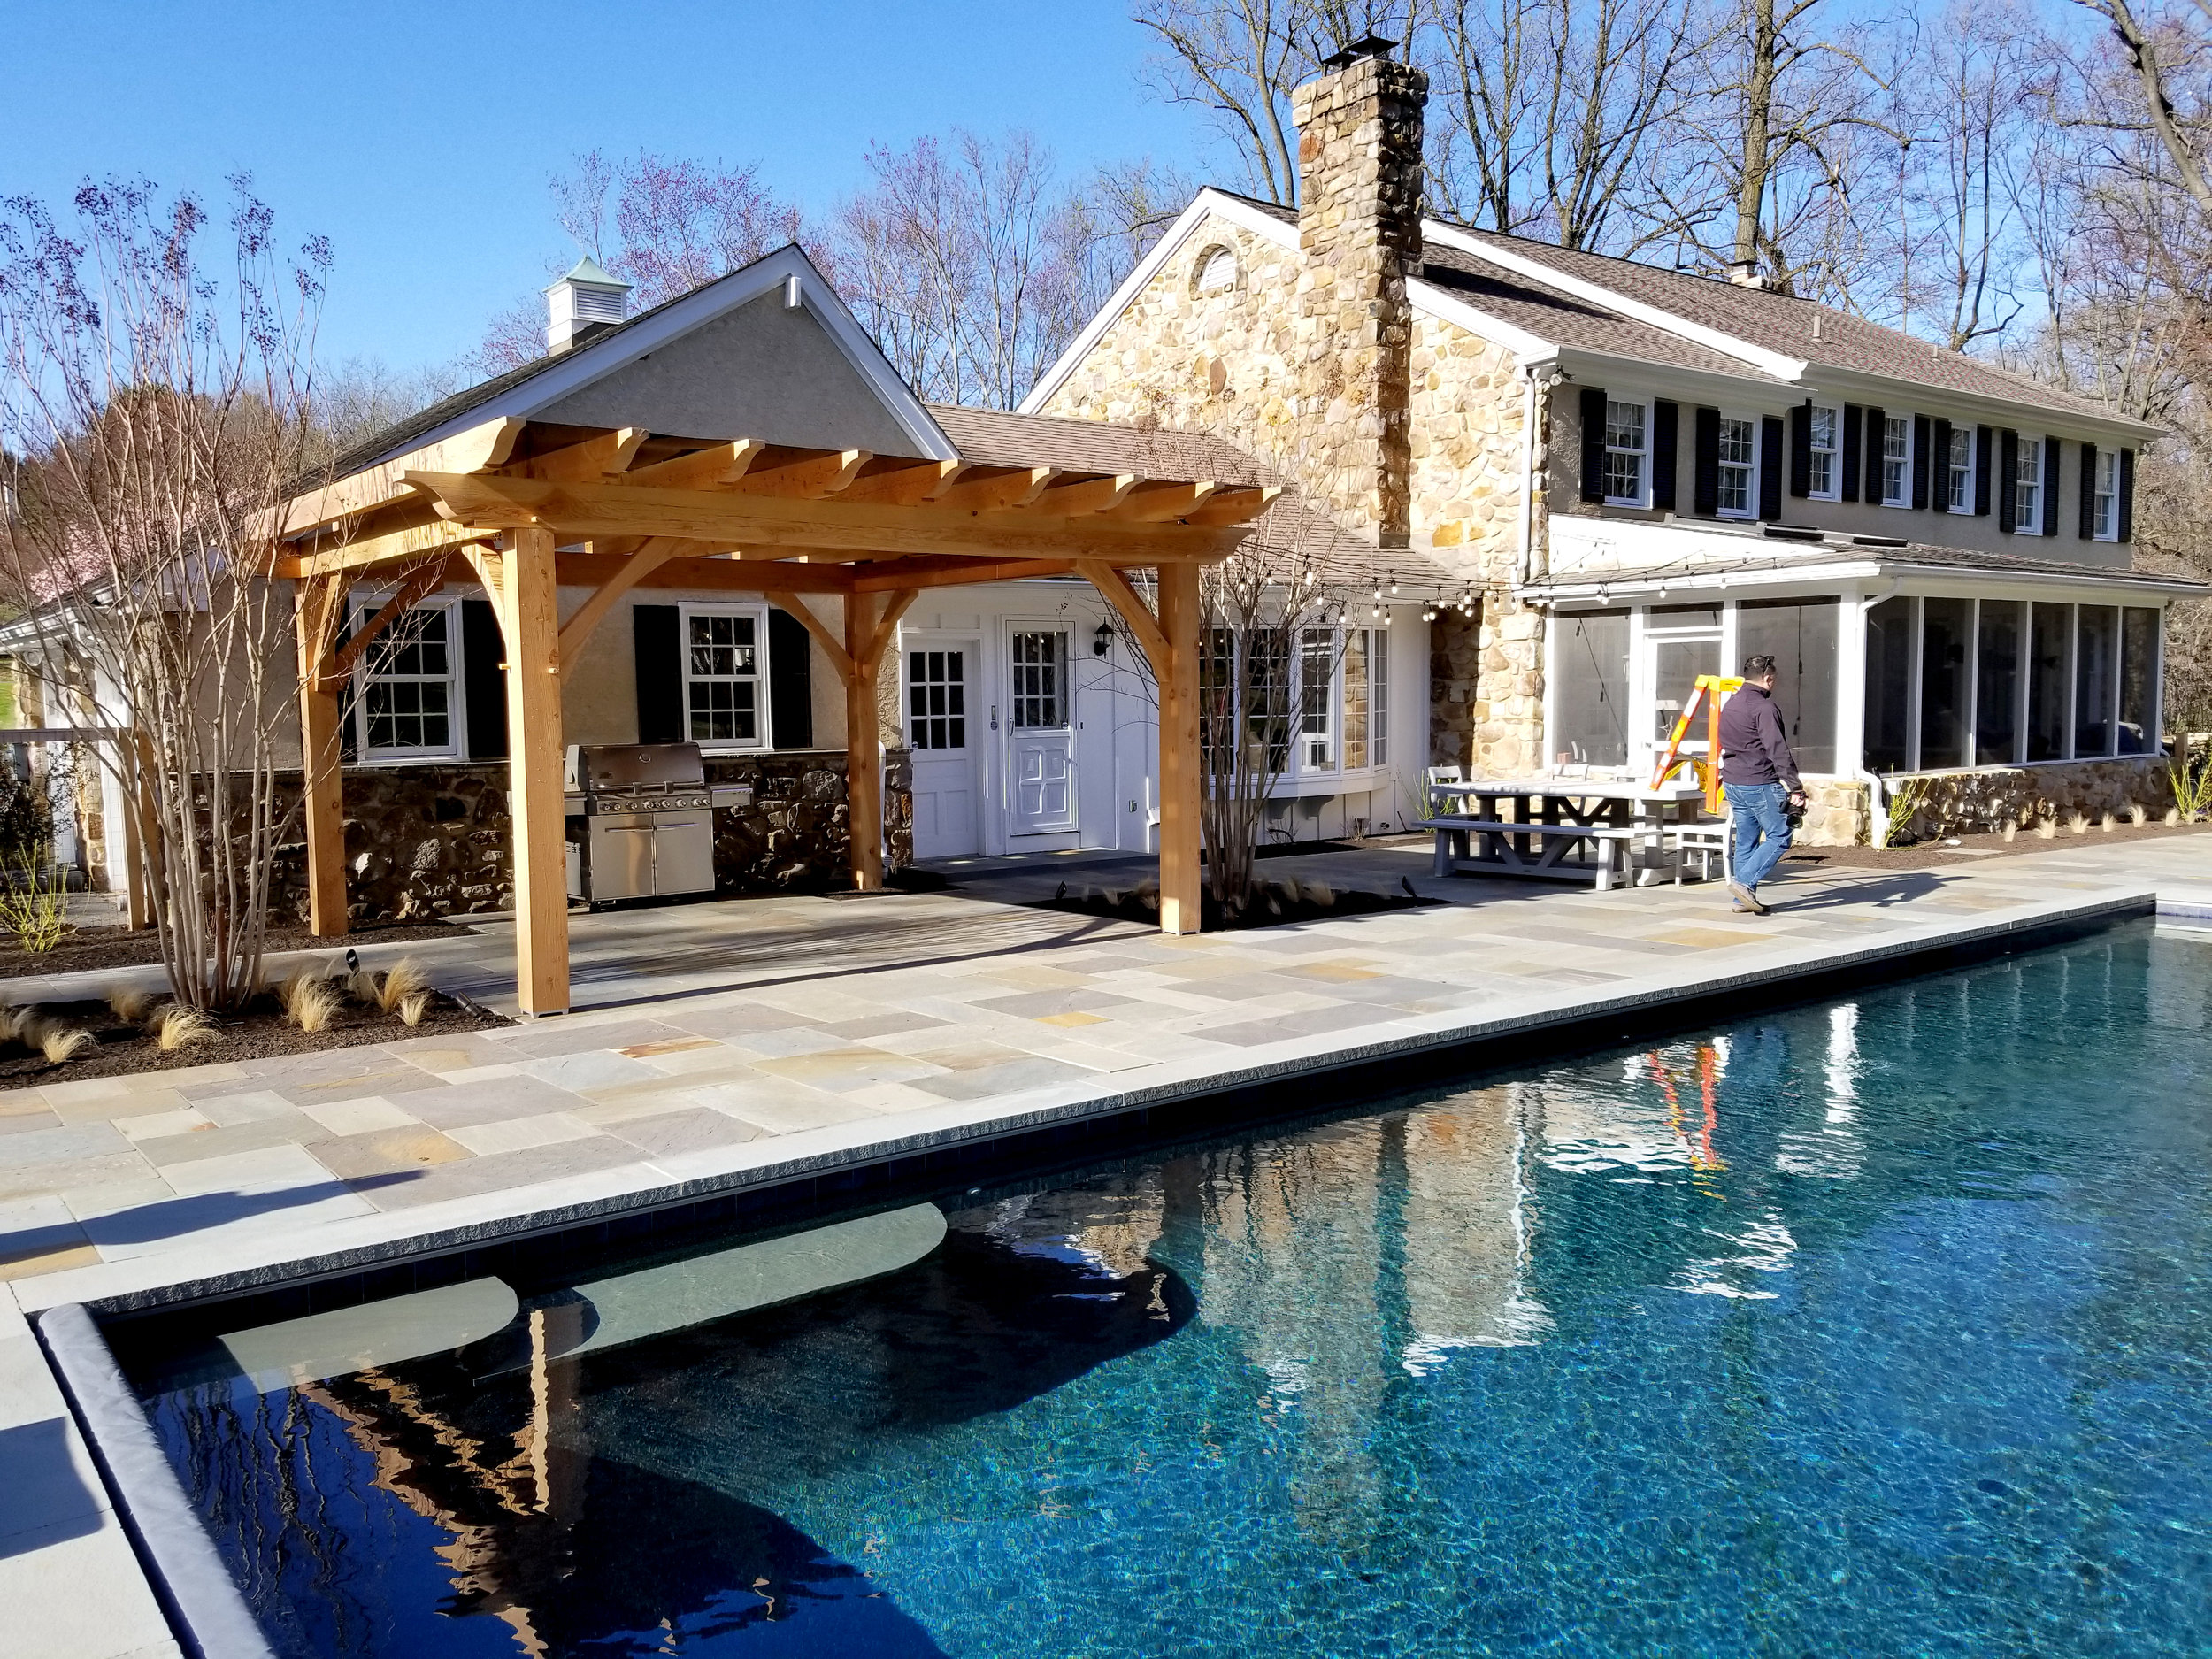 Eskander pool and pergola photo shoot.jpg